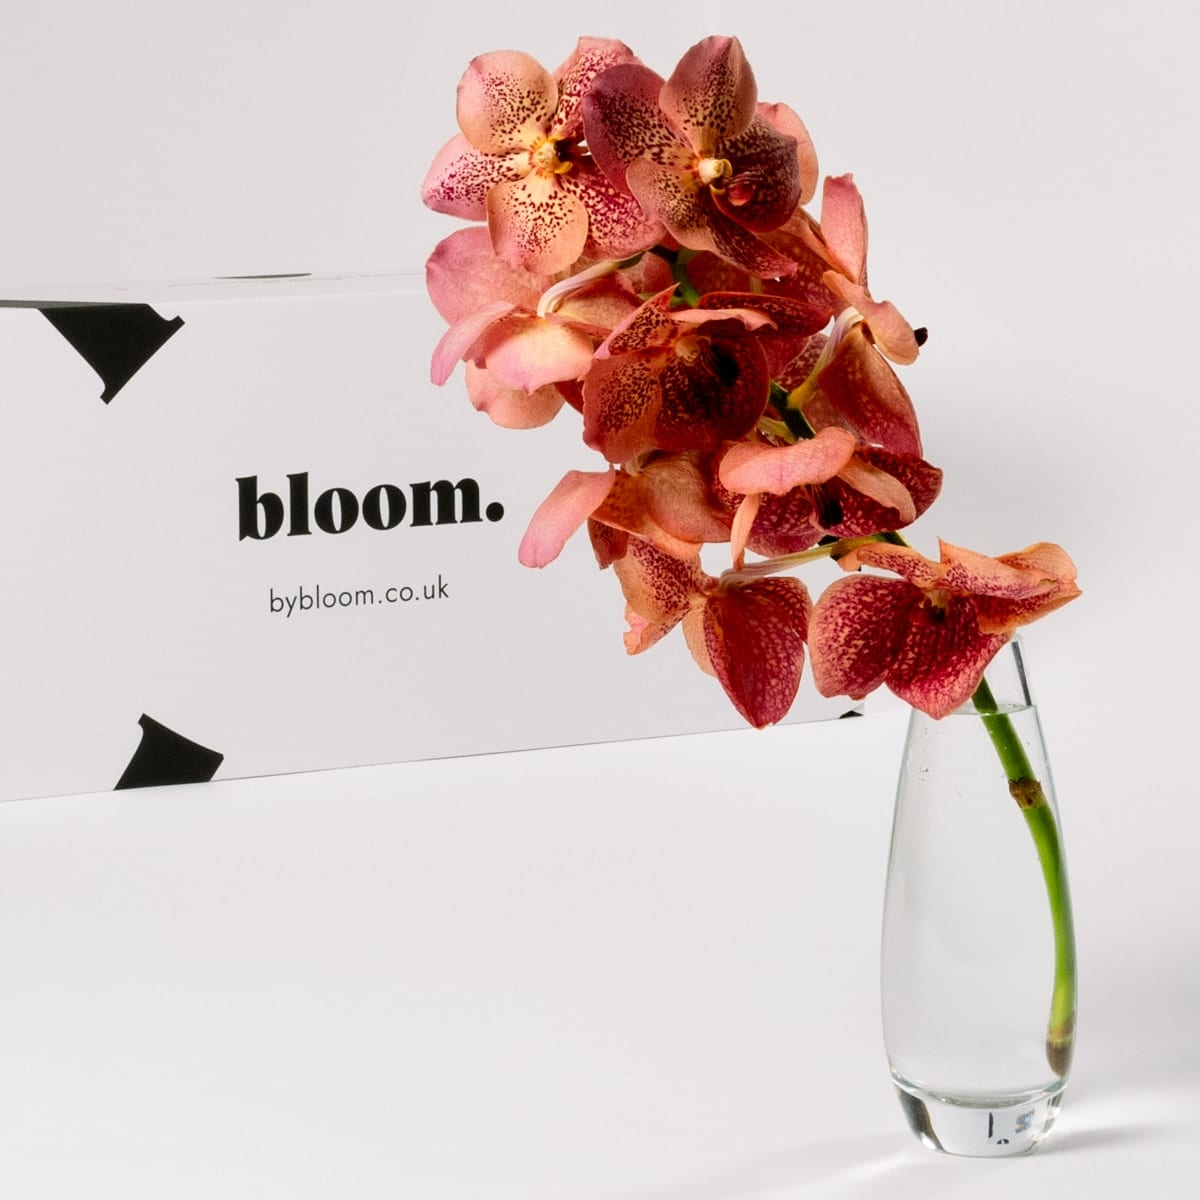 Bloom Flower Delivery | Magenta Haze Vanda Orchid